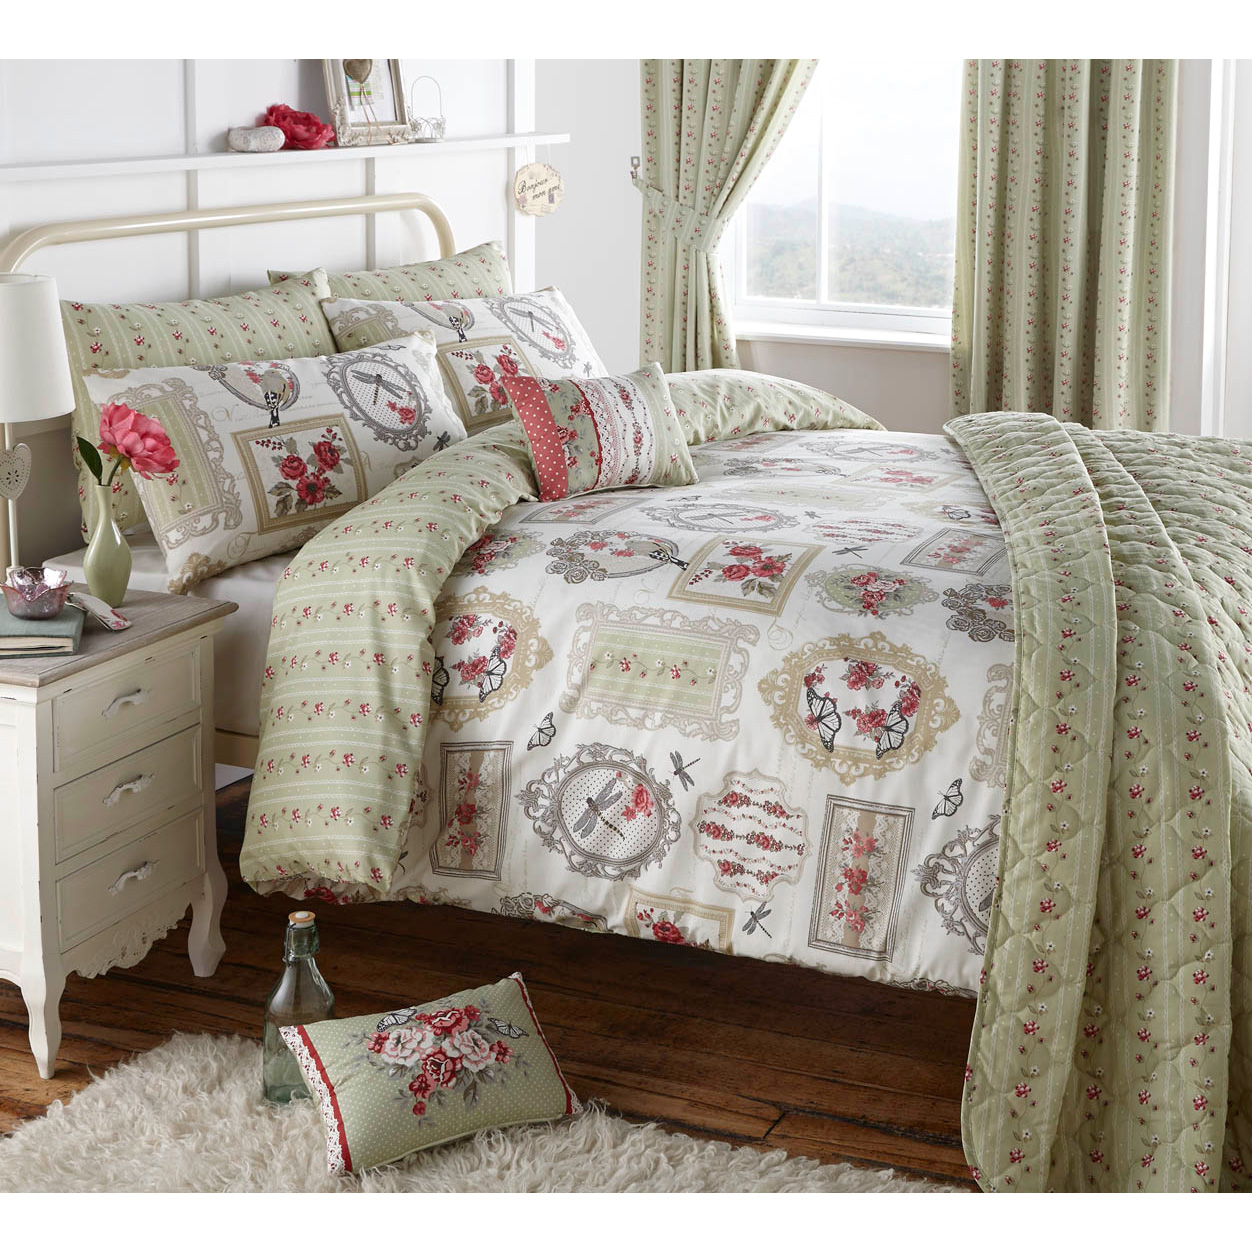 Pretty Bed Covers Pretty Roses Butterflies And Bird Bedding Vintage Chic